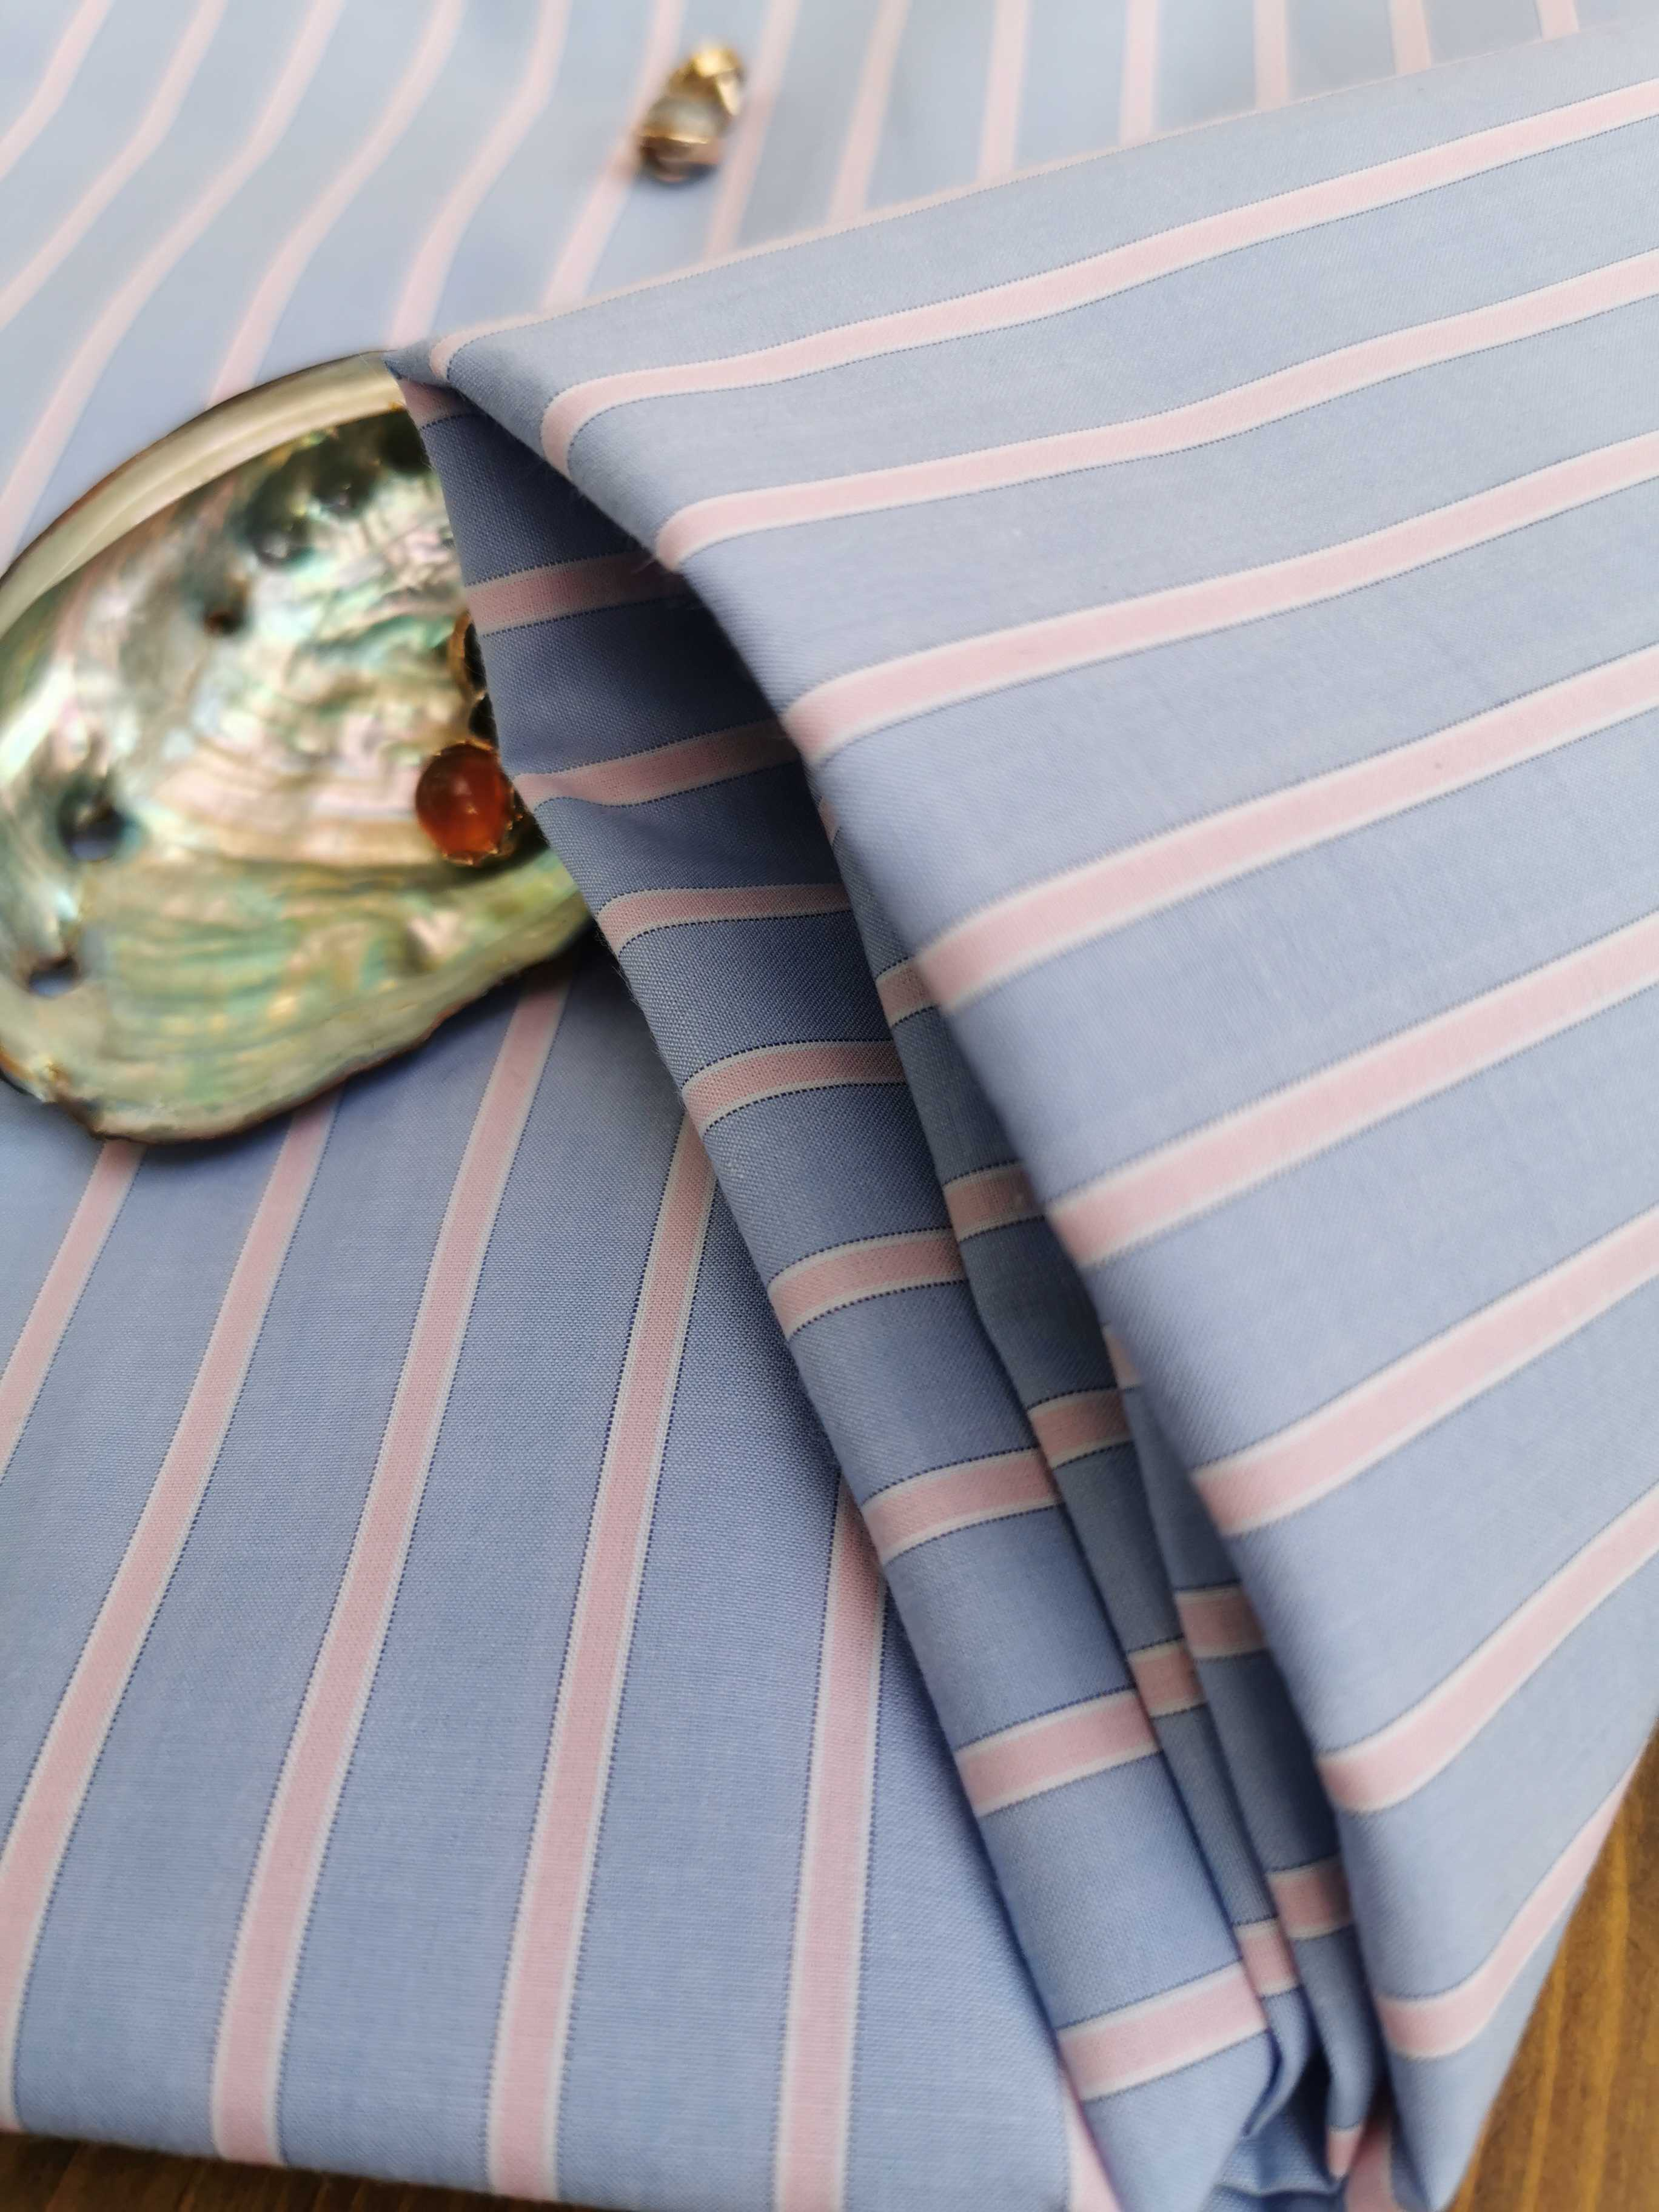 Spring, summer and autumn blue all cotton yarn dyed striped shirt dress fabric combed high count cotton clothing fabric is small and fresh